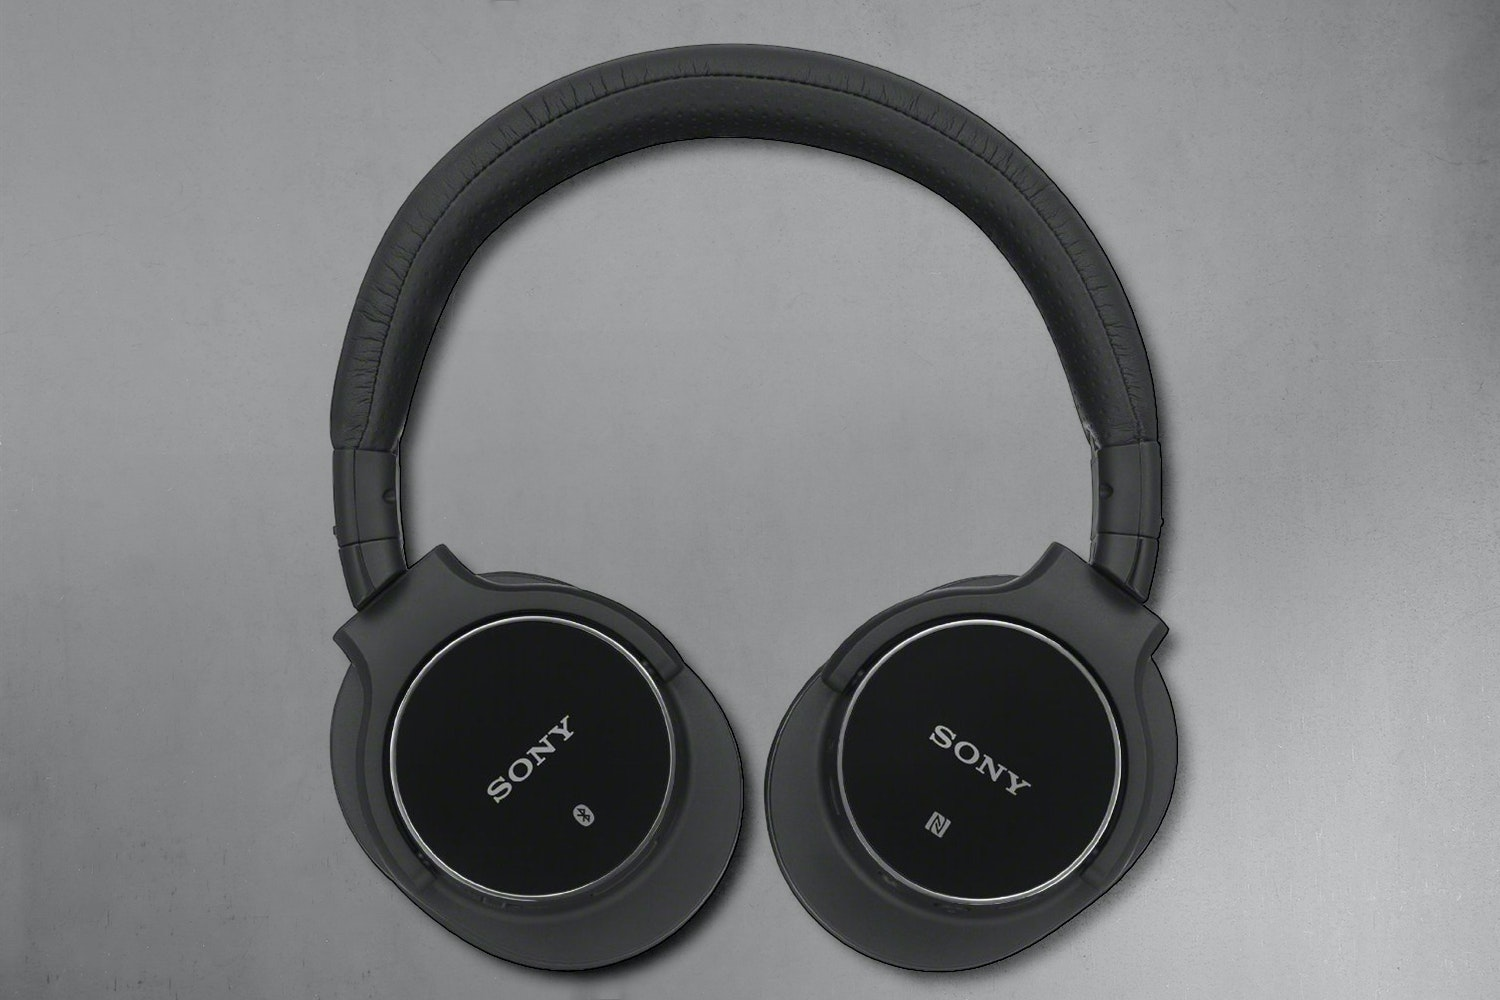 Sony MDR-ZX750BN Wireless Headphones